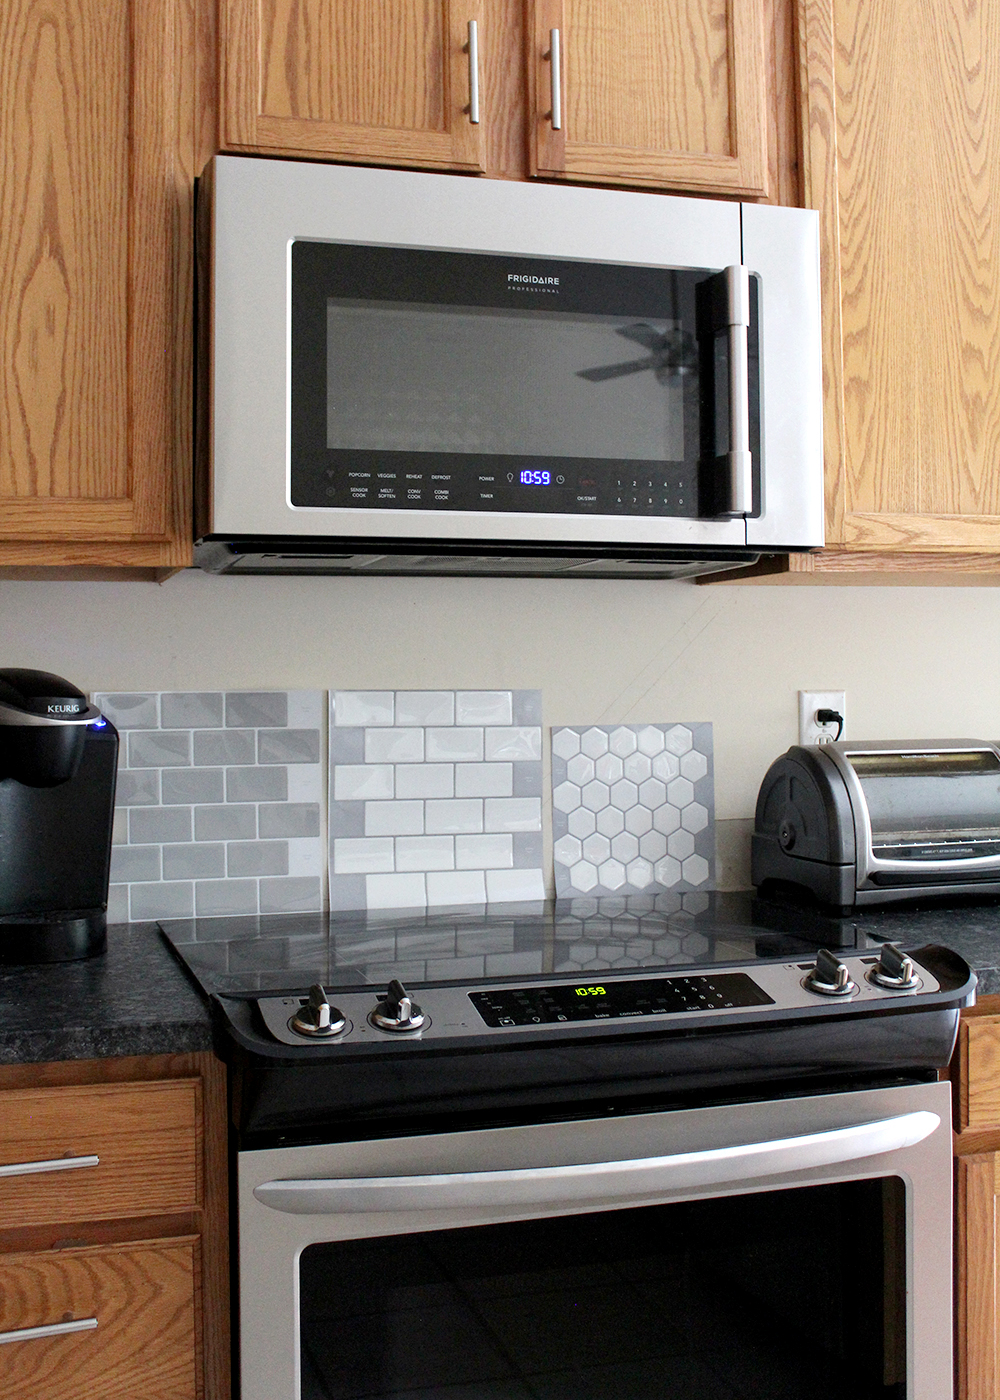 Peel and Stick Tiles for the Backsplash. I love that these are DIY friendly and you don't need a tile cutter!